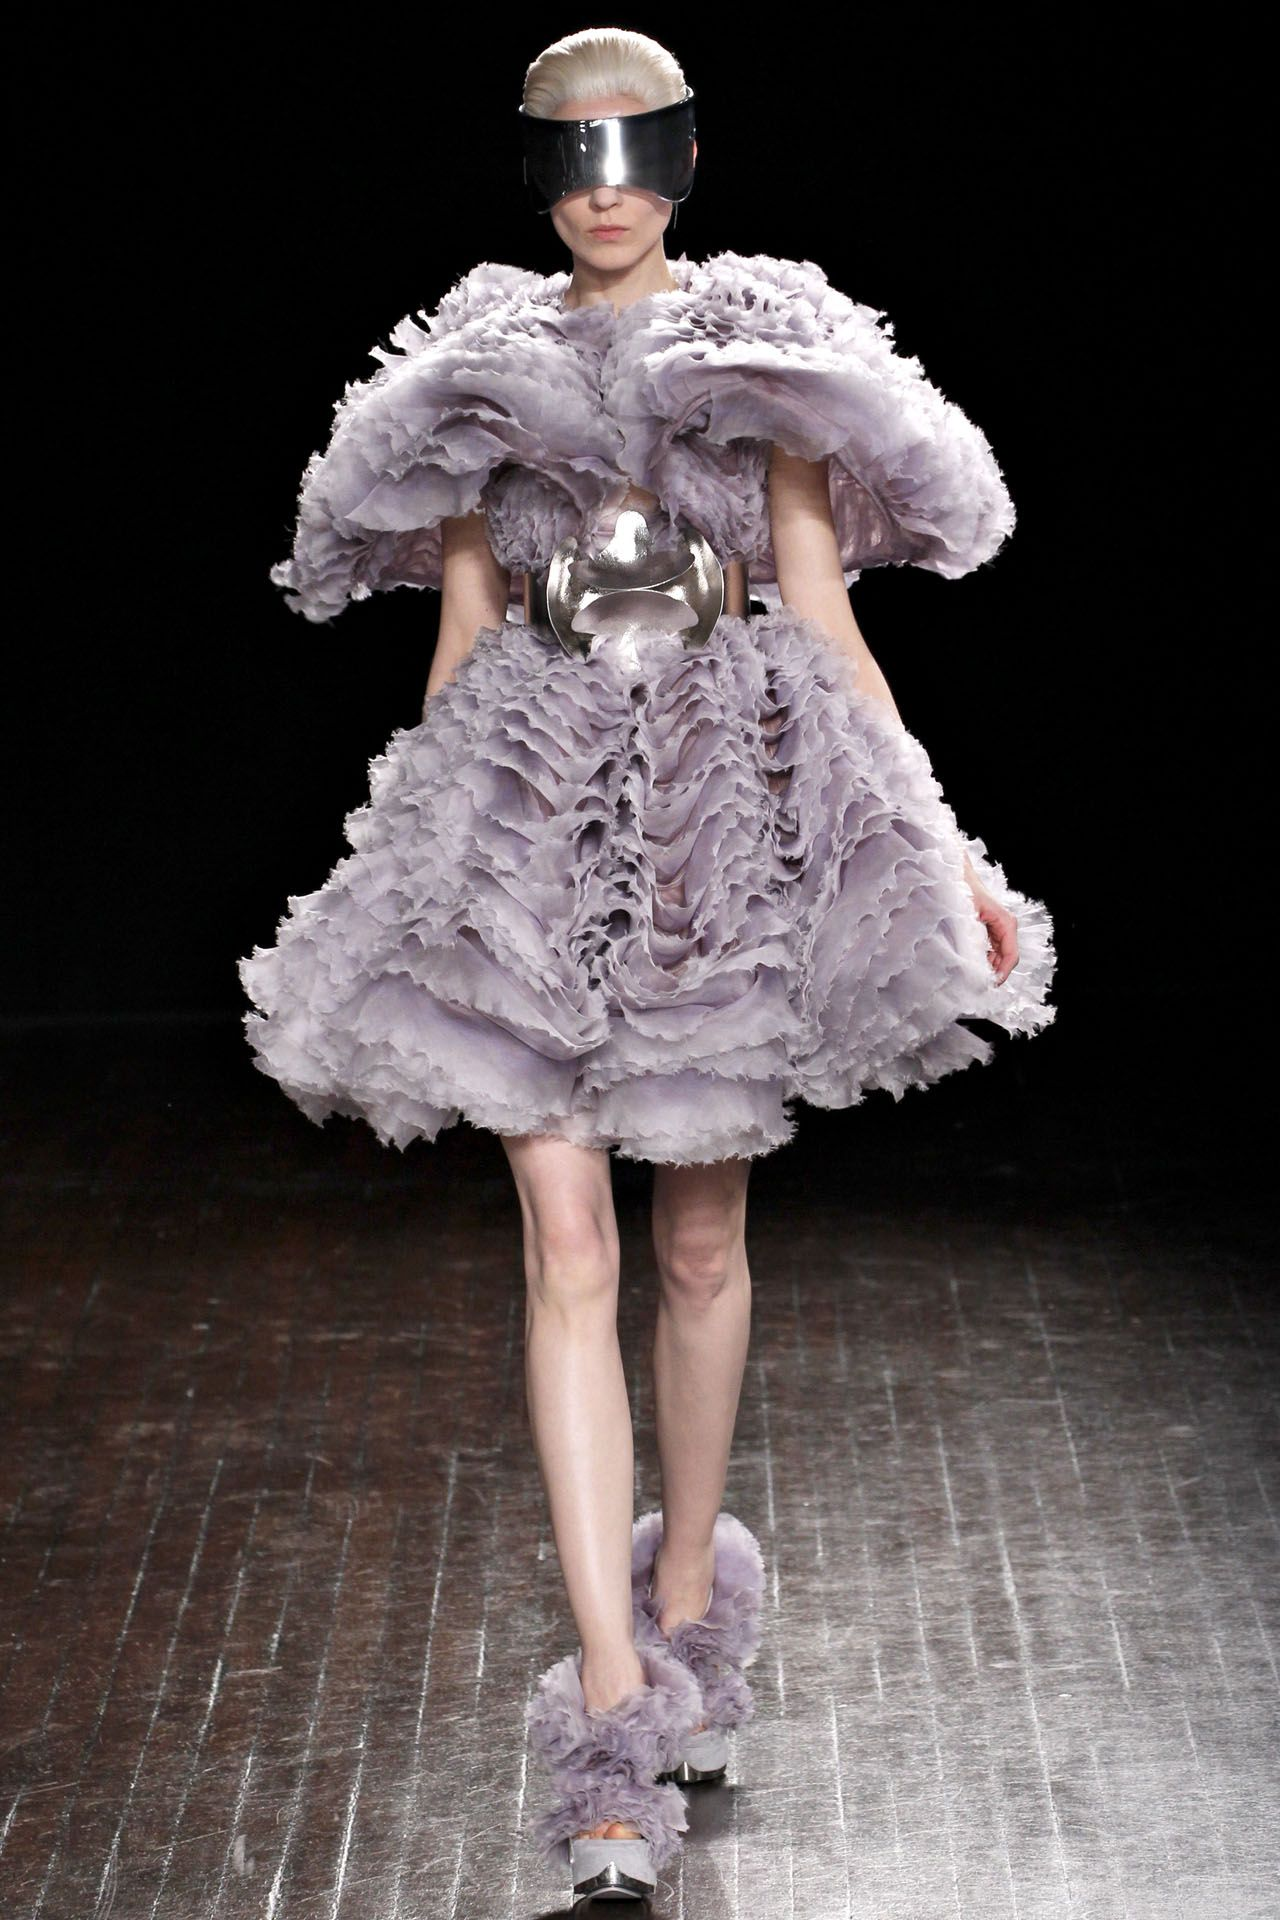 alexander mcqueen dresses - Google Search